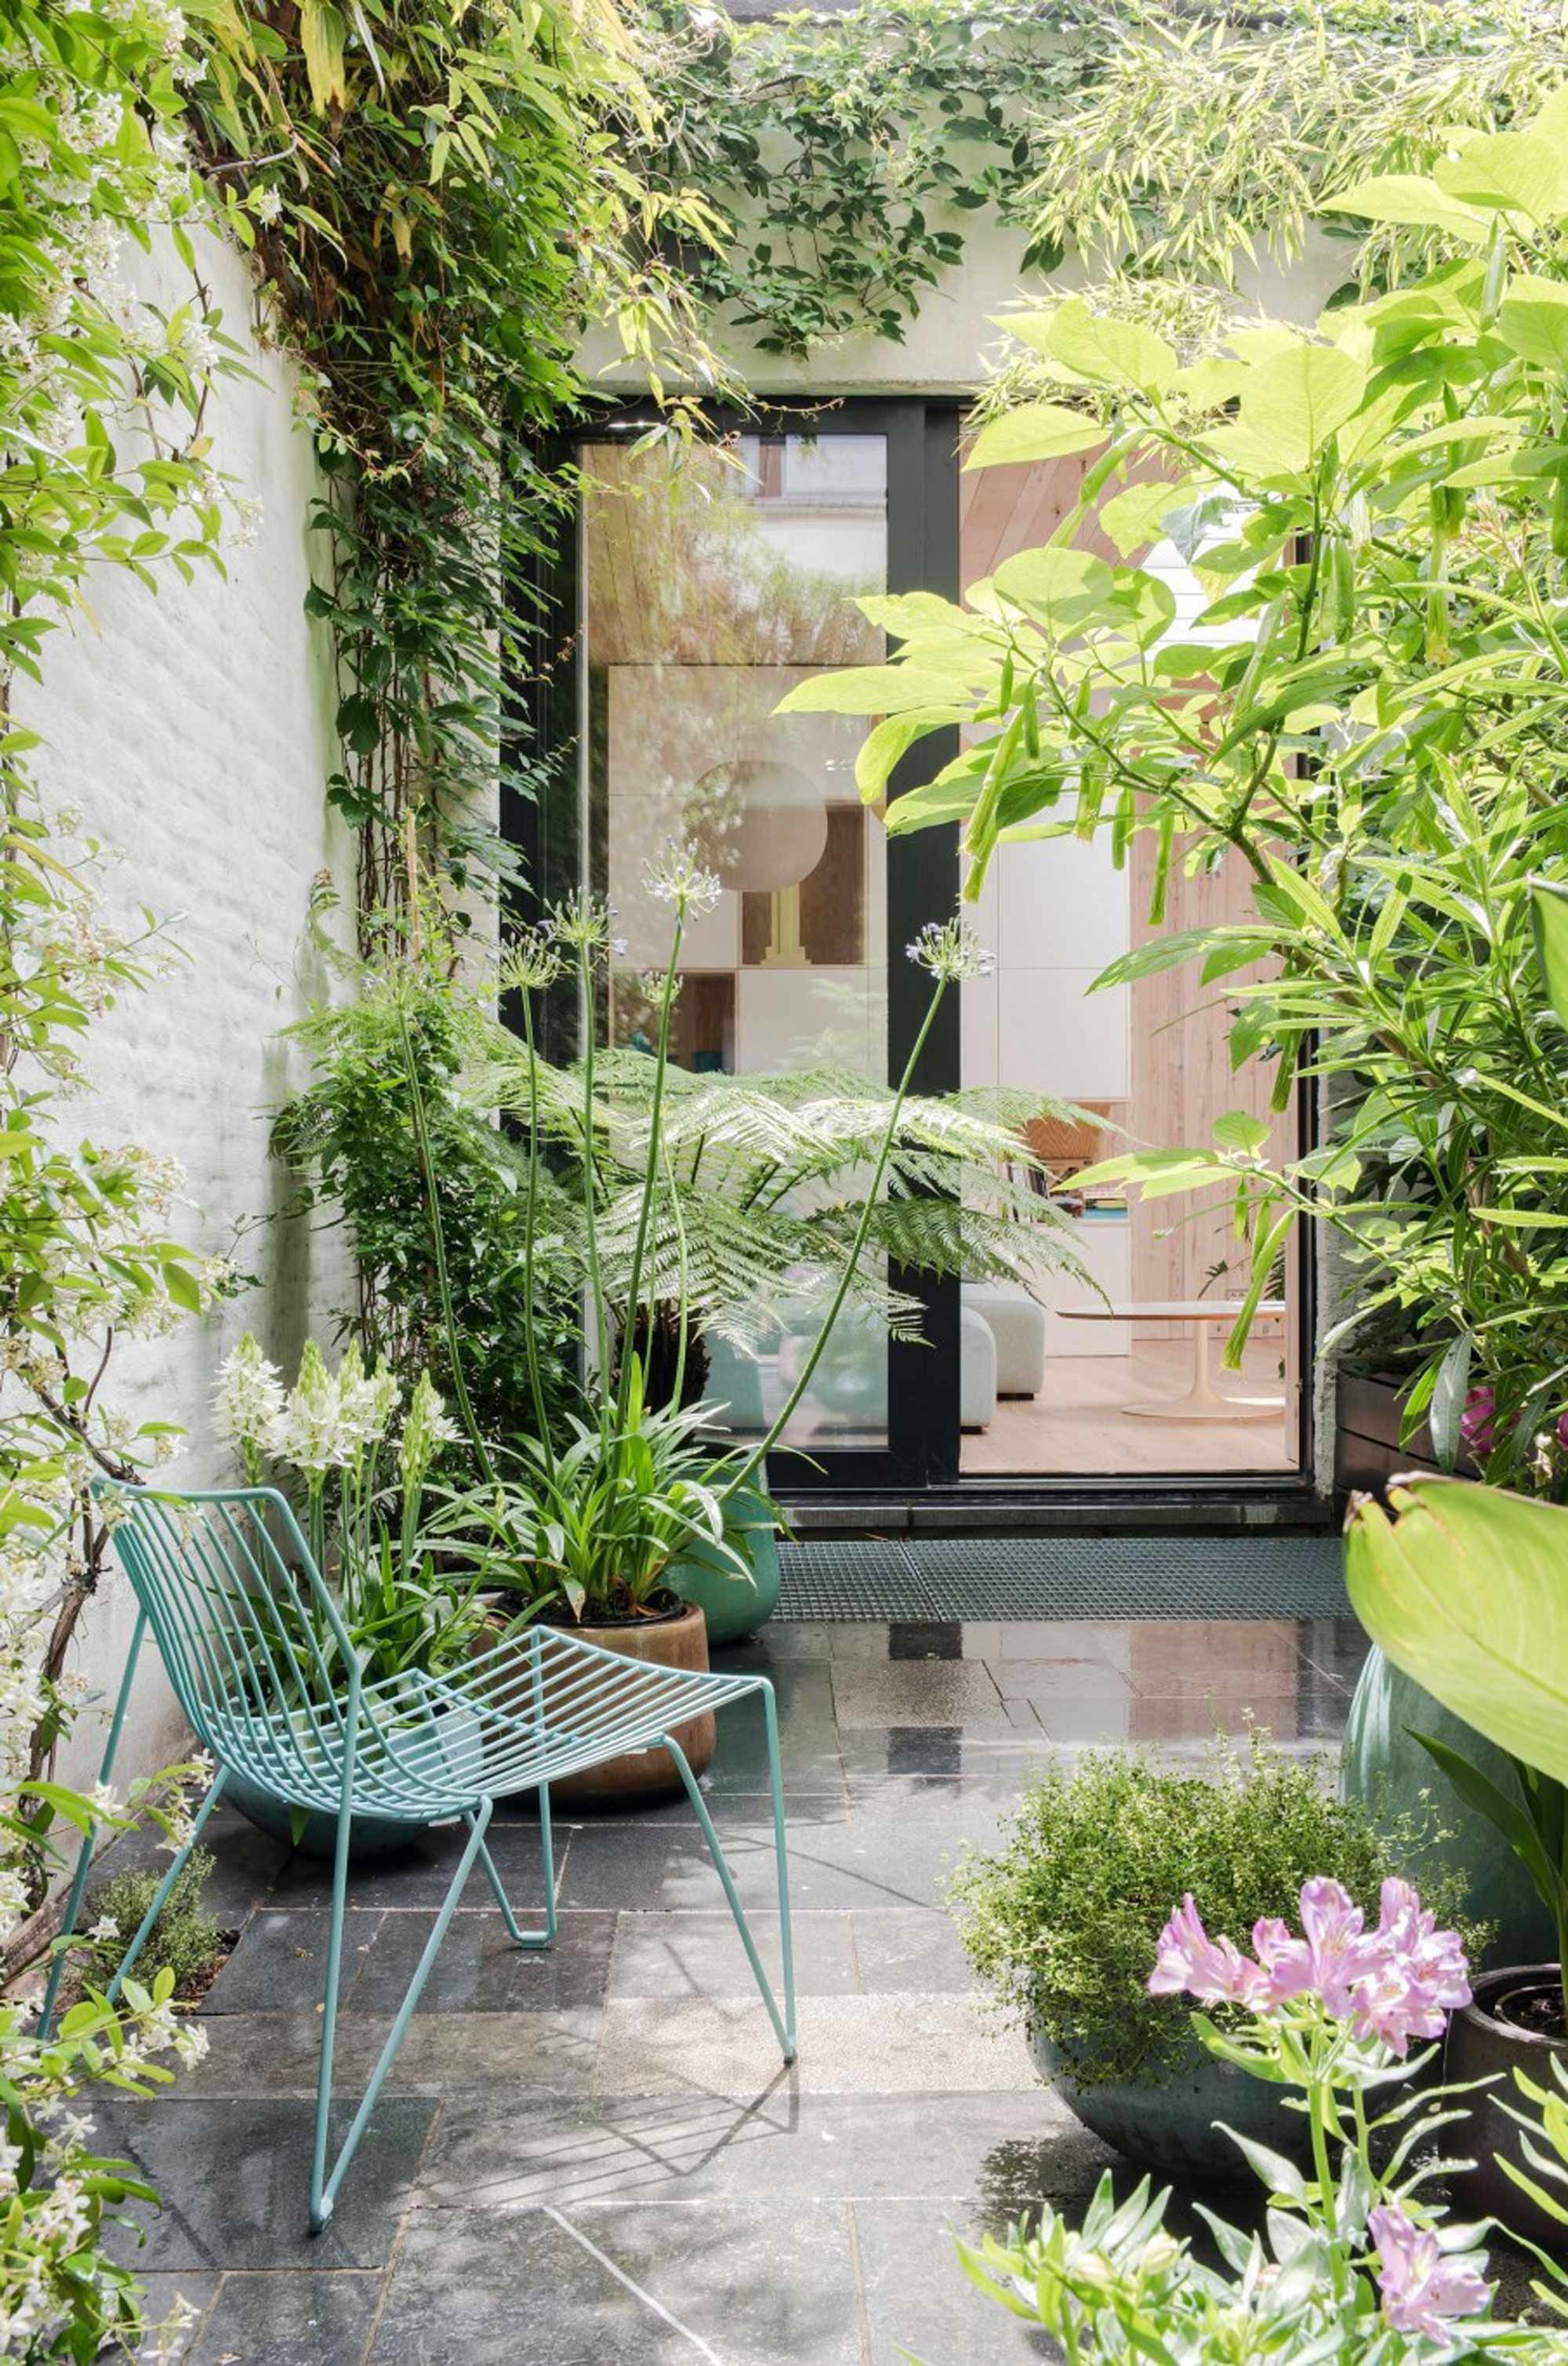 Jungle patio urban jungle pinterest terrasses for Amenagement petite cour maison